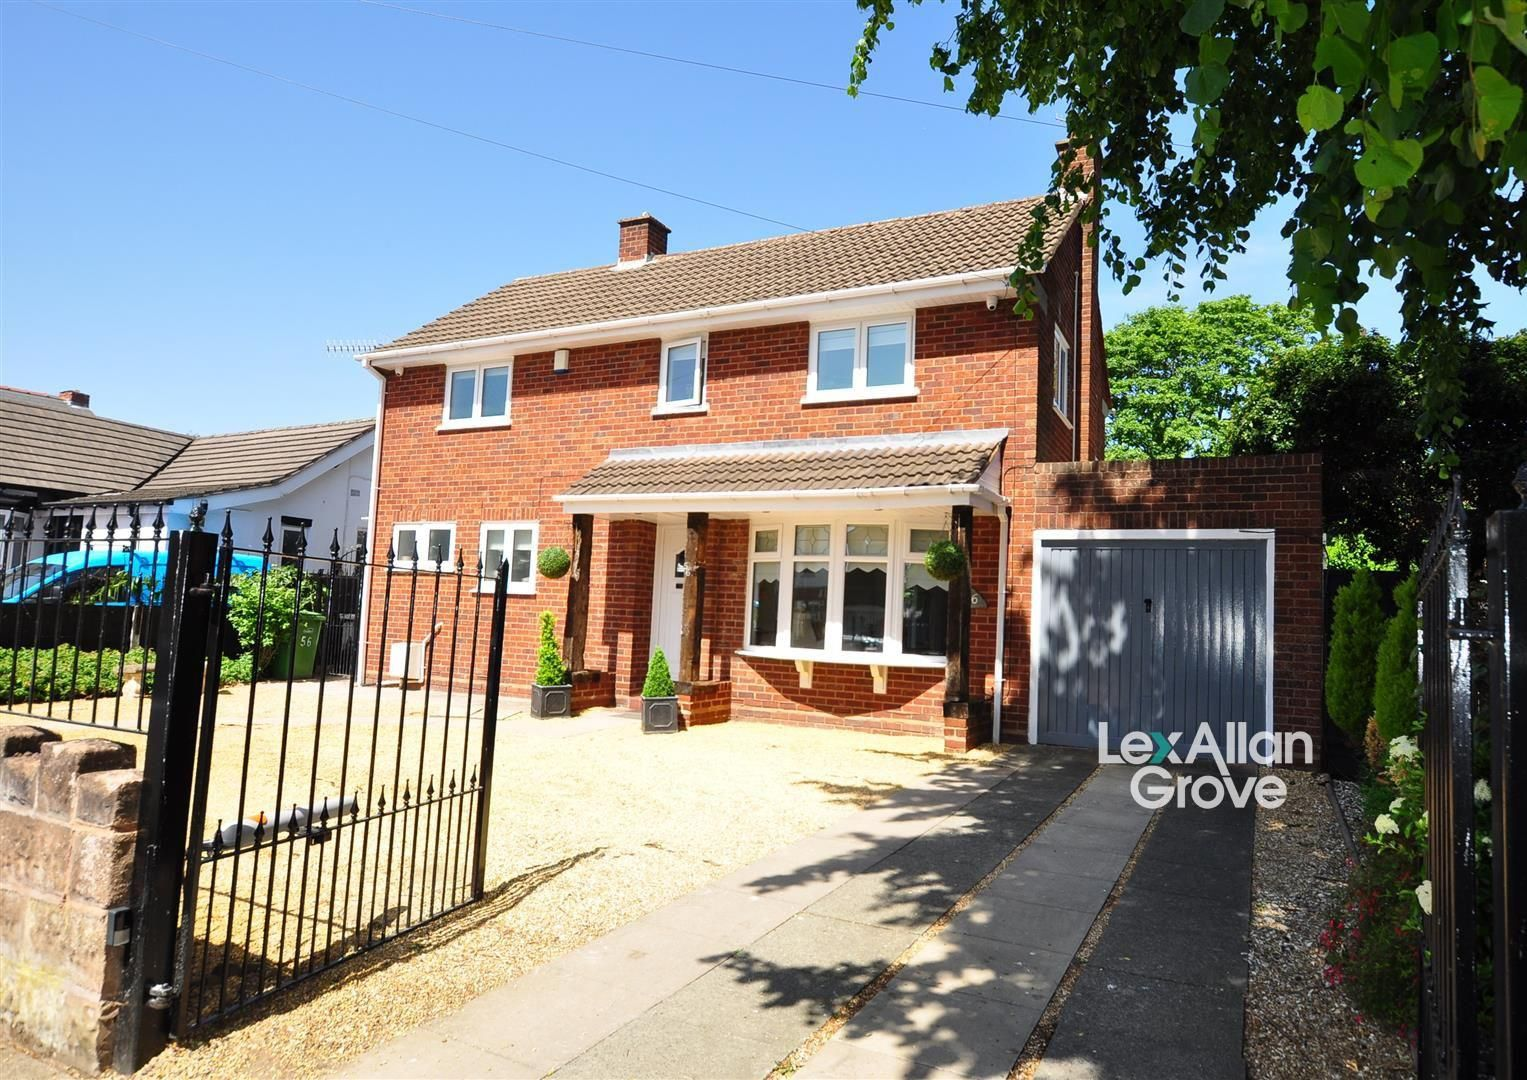 3 bed detached for sale, DY2